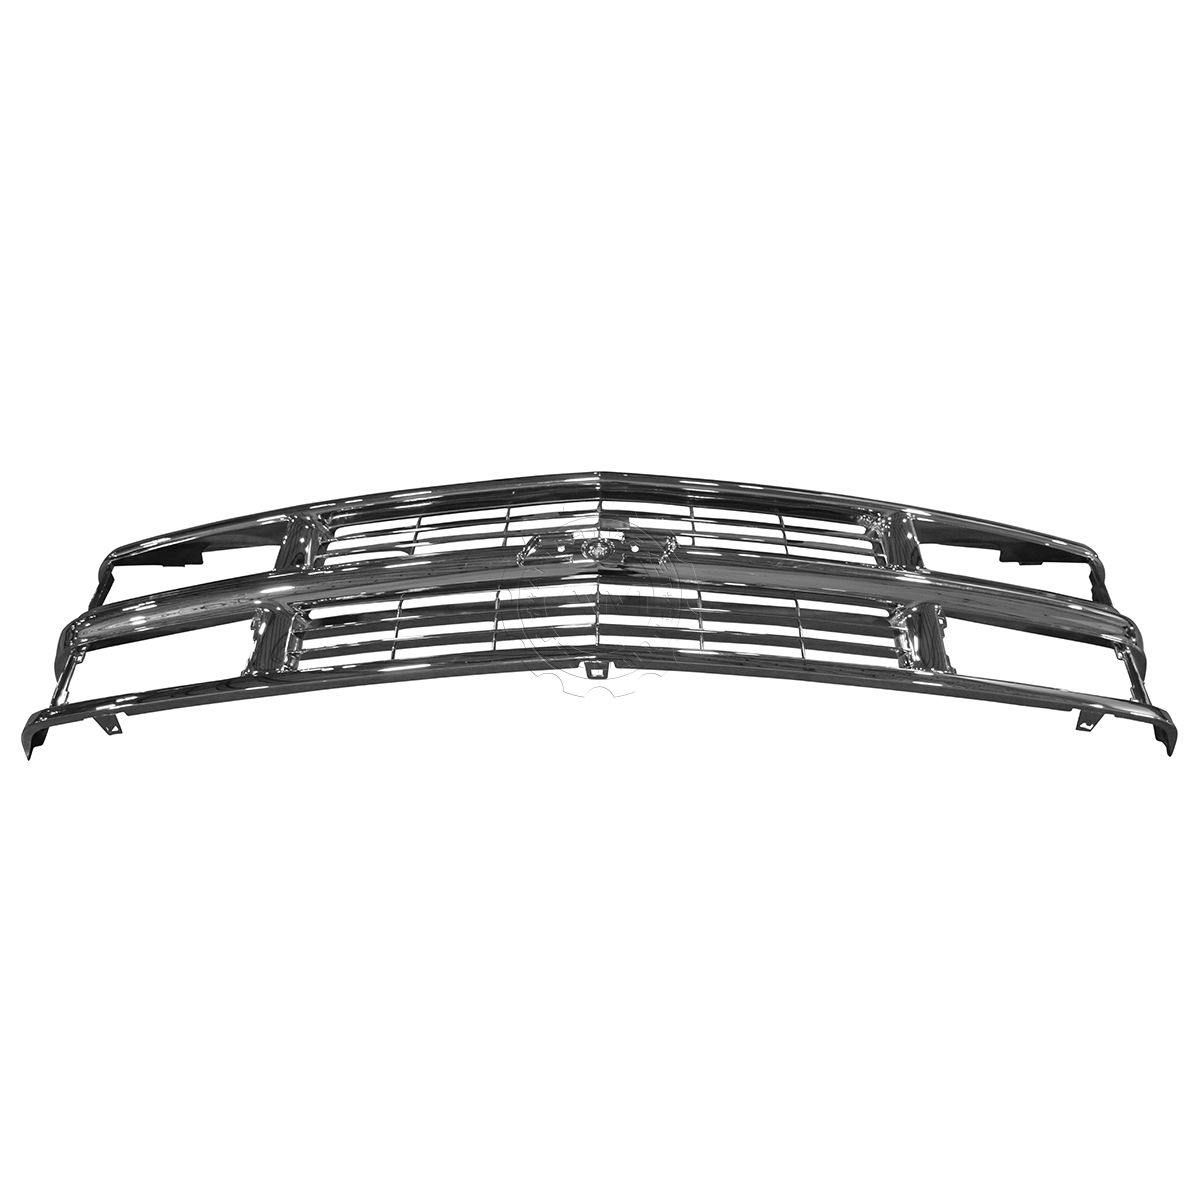 Grille Grill Chrome Front End For Chevy C K Pickup Truck Suburban Tahoe Blazer